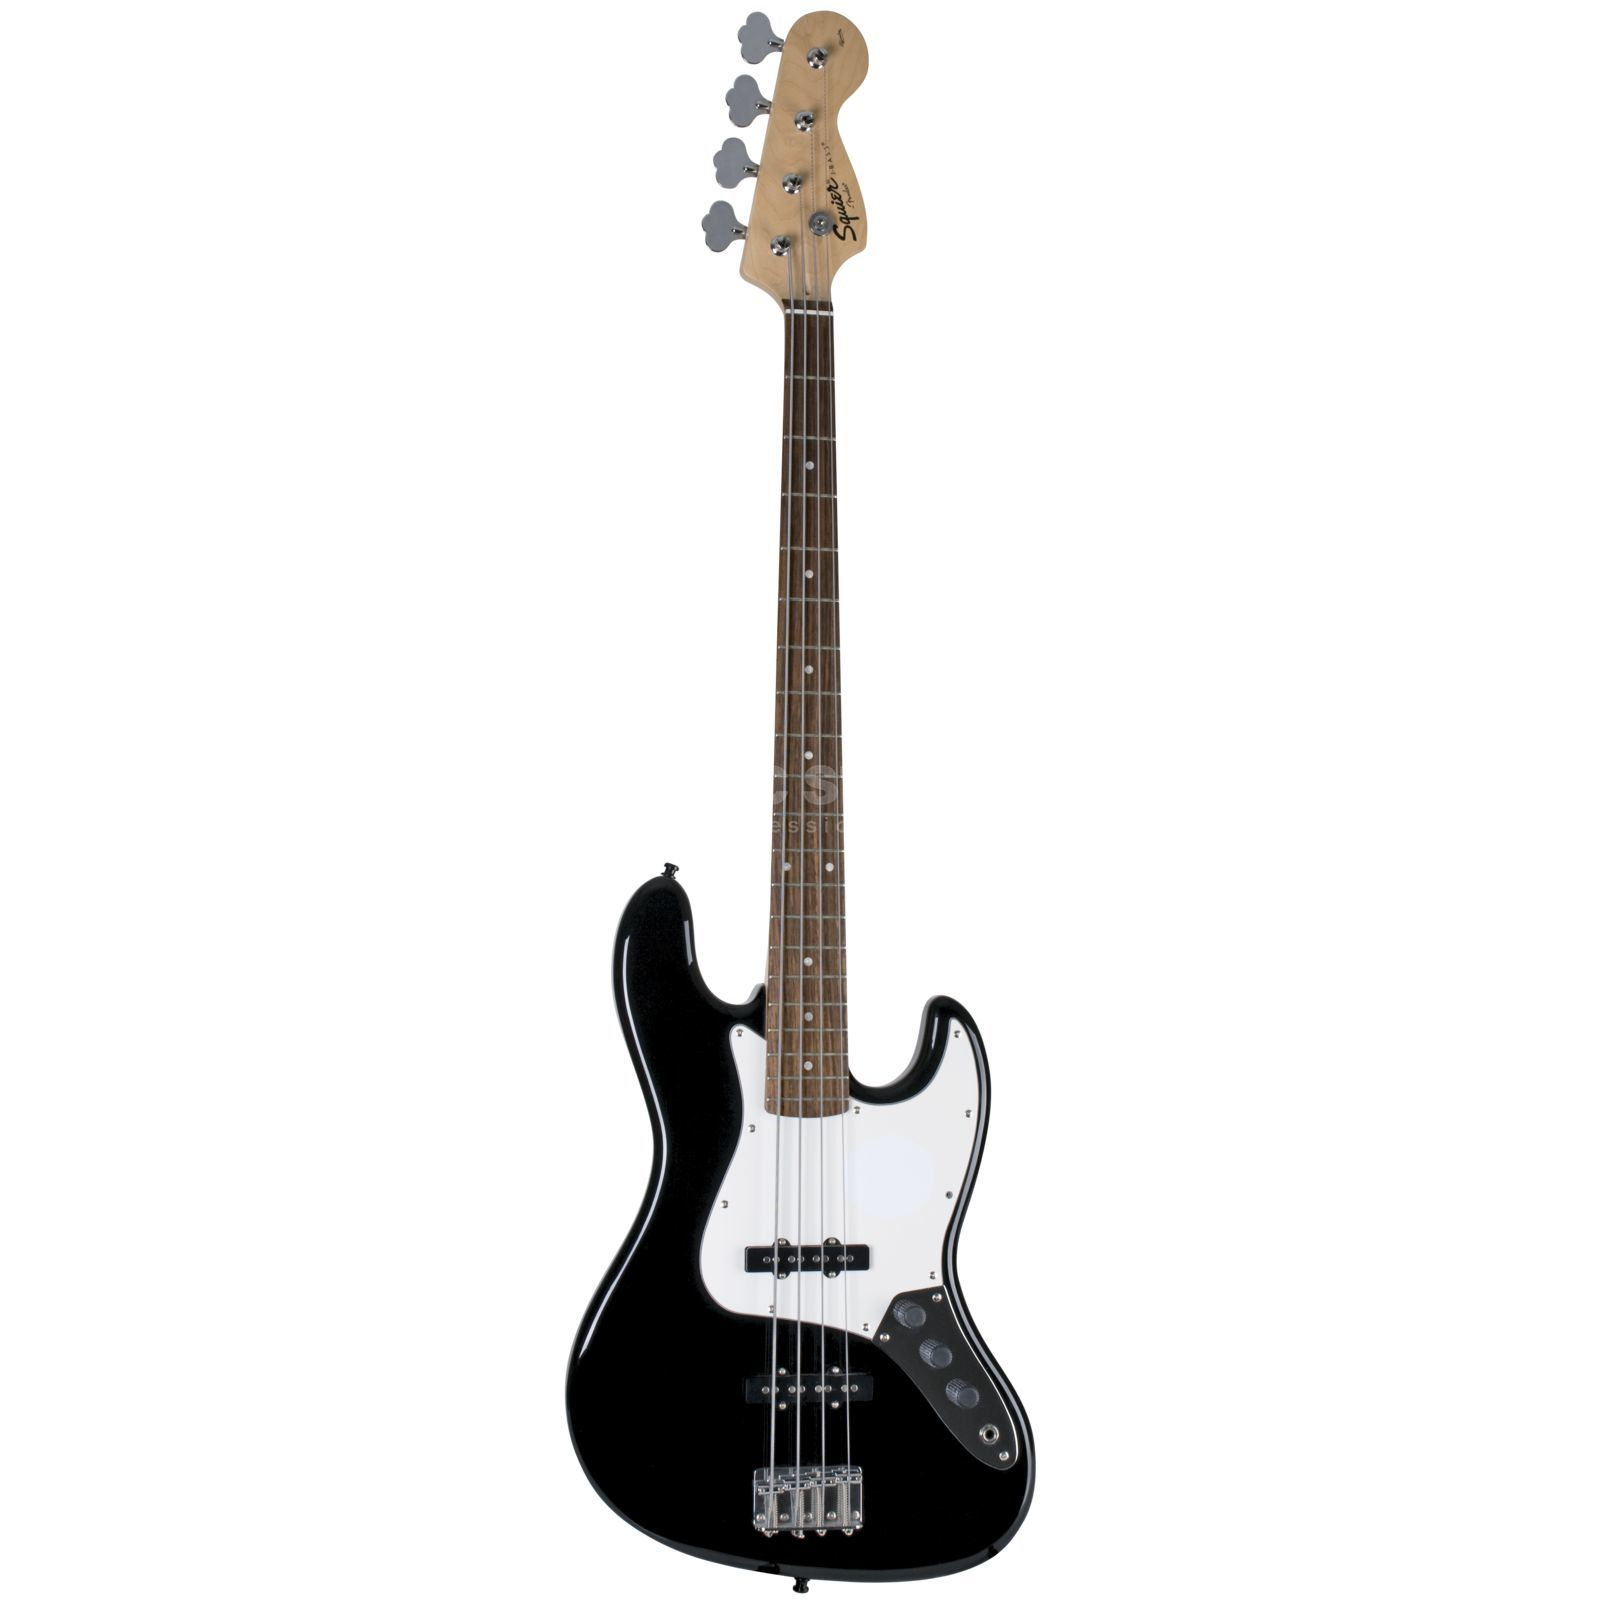 Fender Squier Affinity Series Jazz Bass RW Black Produktbild